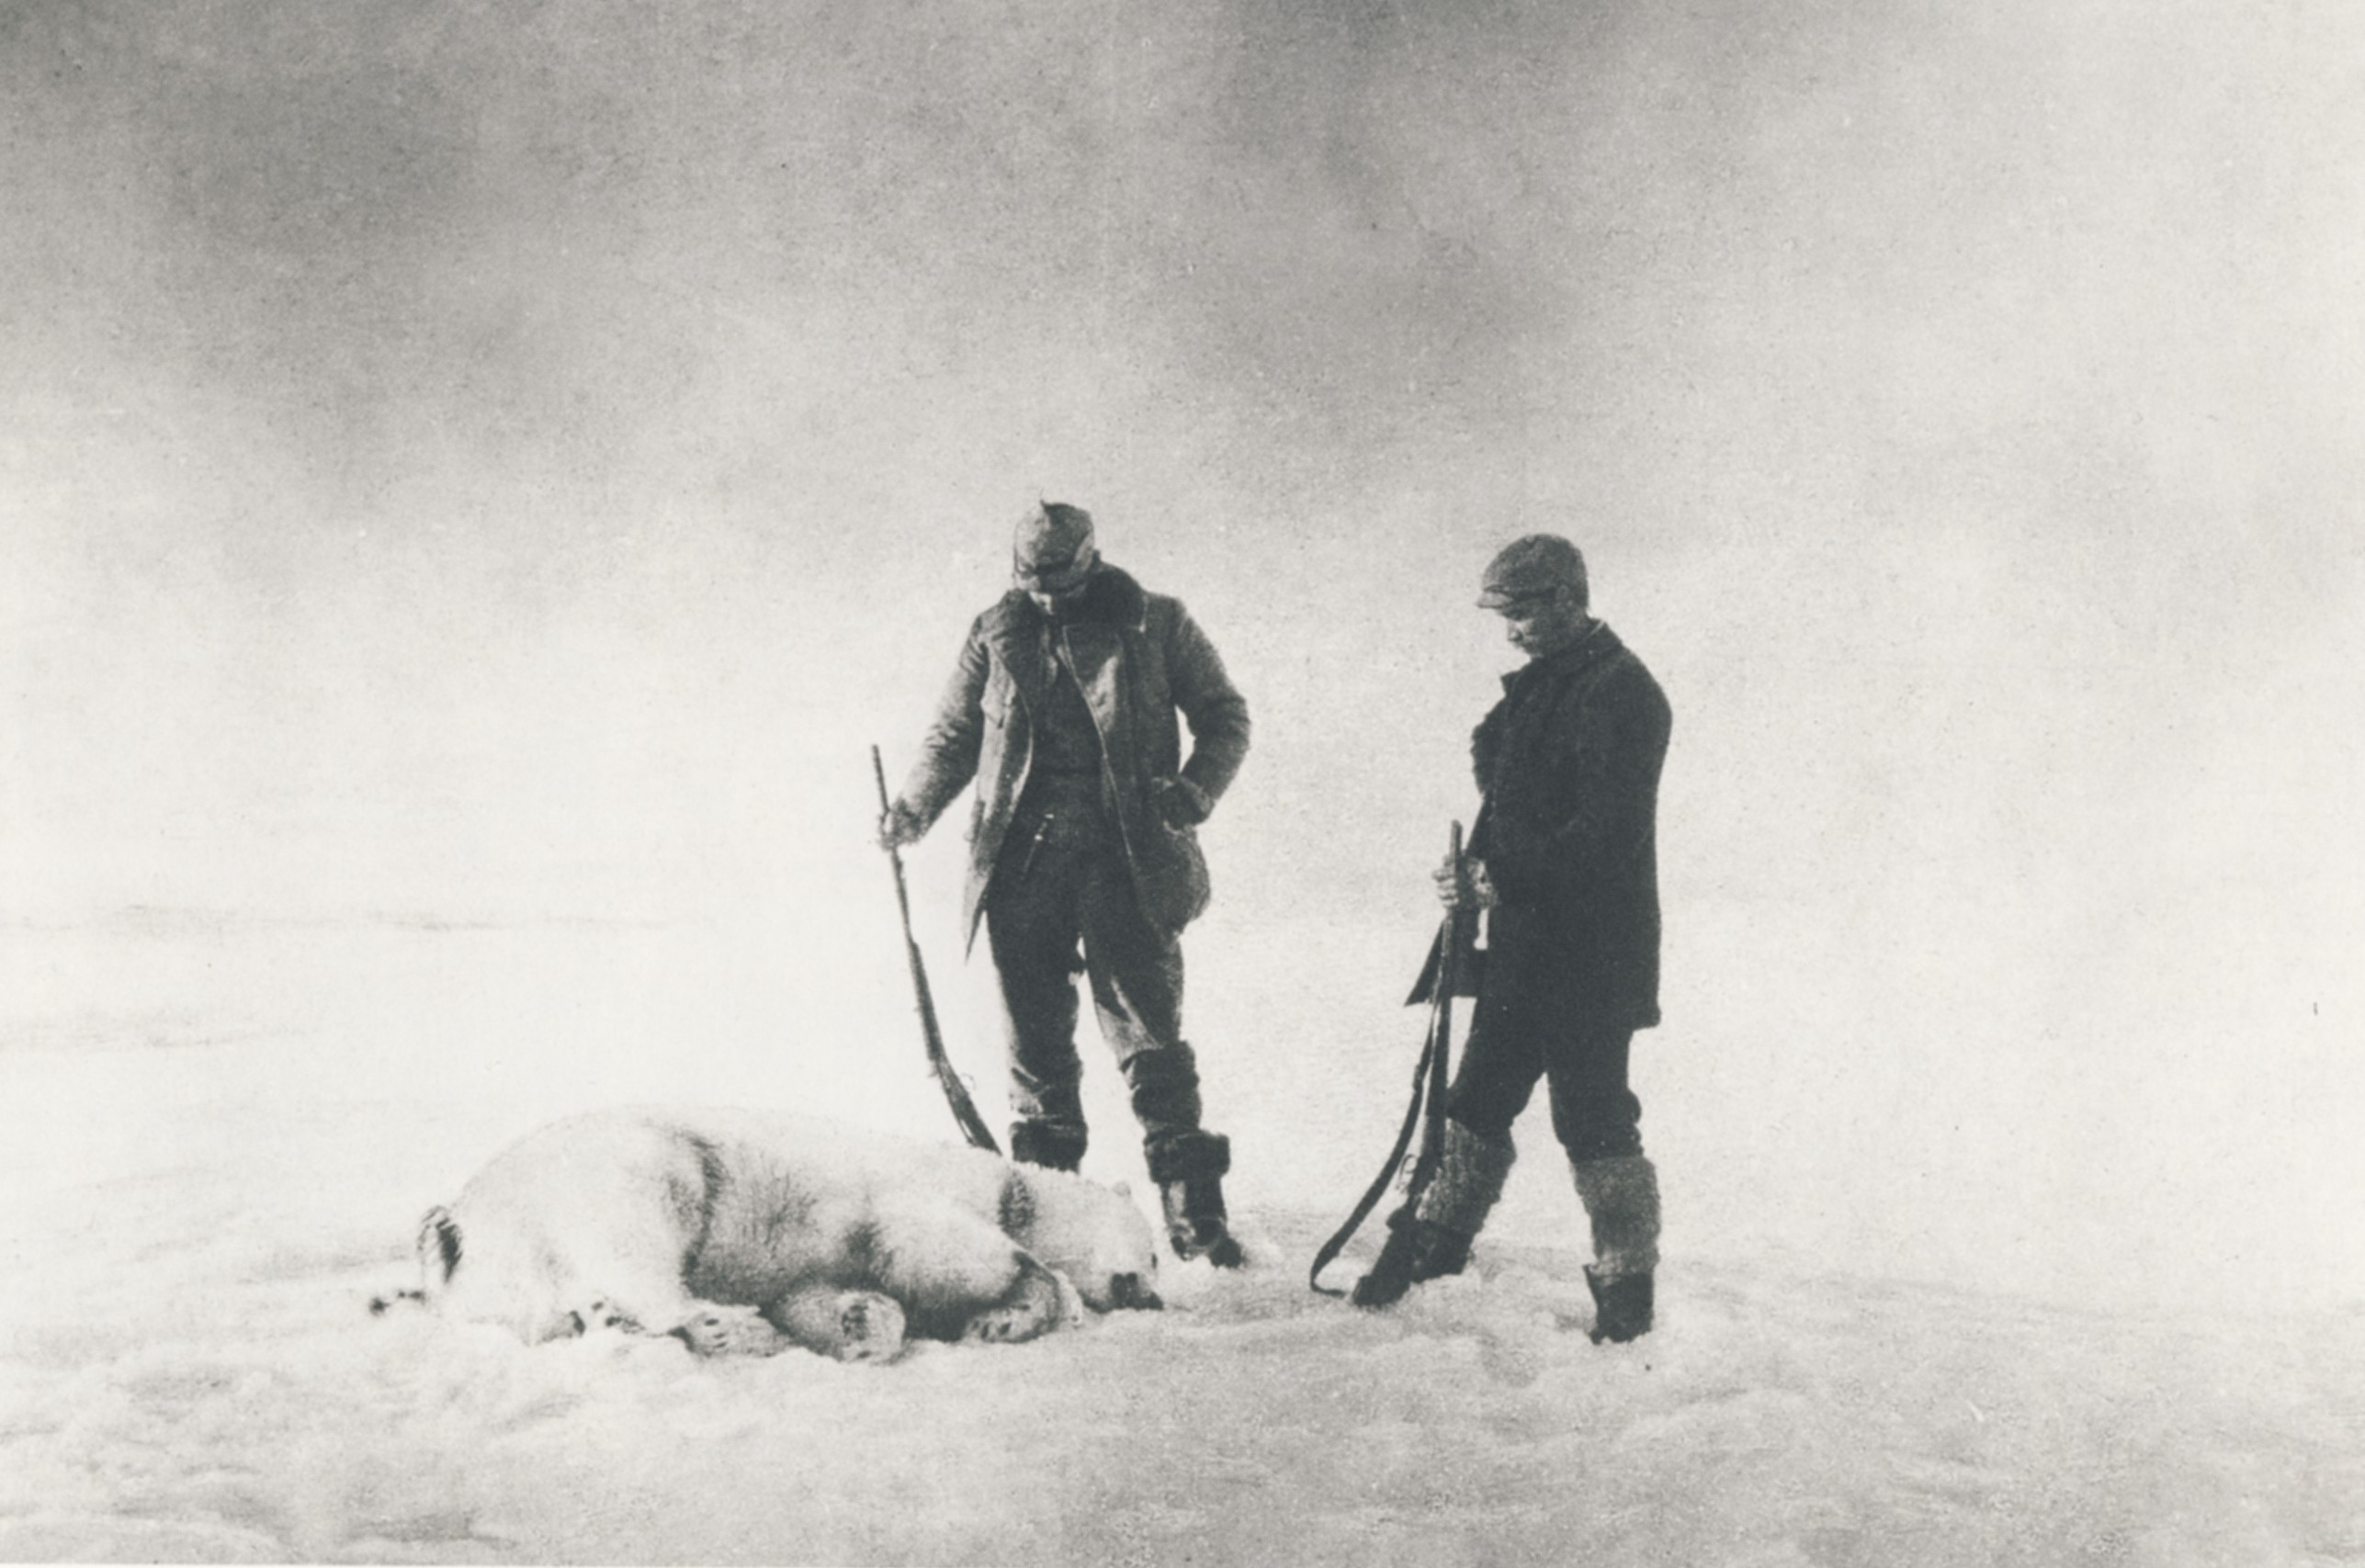 Two men with rifles standing over a dead polar bear.